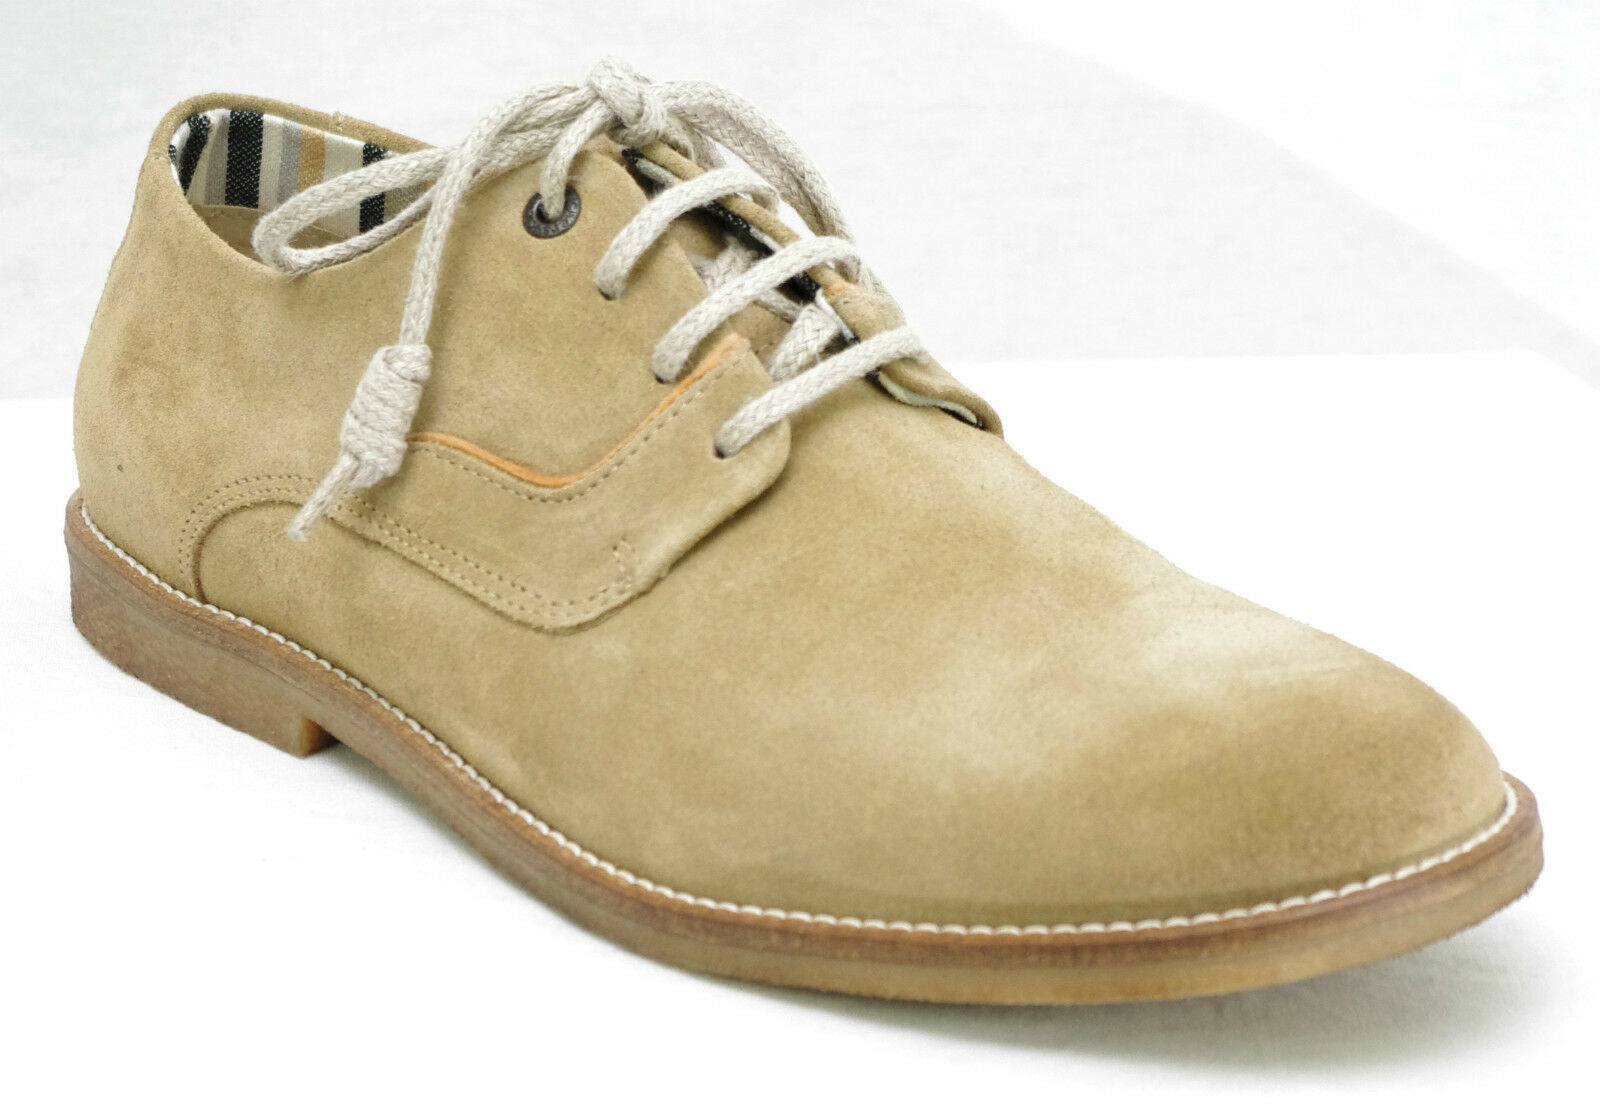 Clair Derbies Chaussures Bachalcis Beige Nubuck Cuir Homme Kickers 0A0TwqxnF